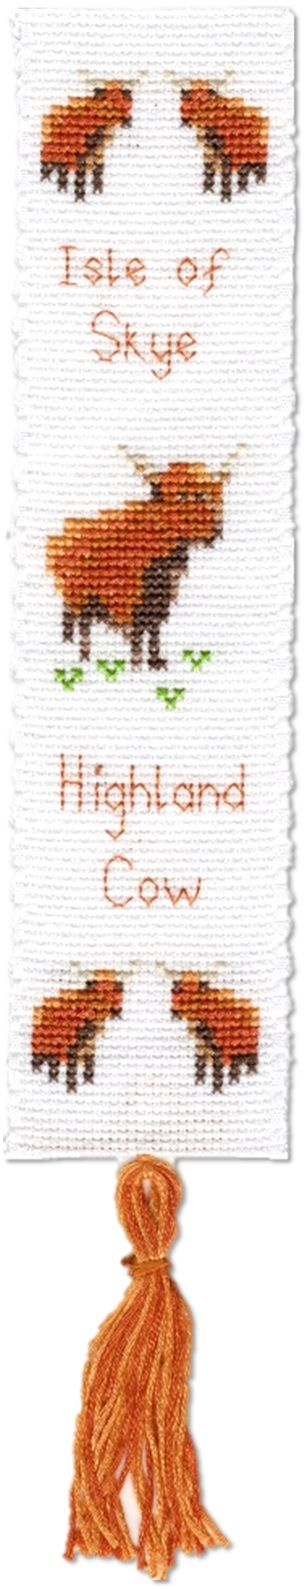 Highland Cow - Scottish Bookmark Cross Stitch Kit